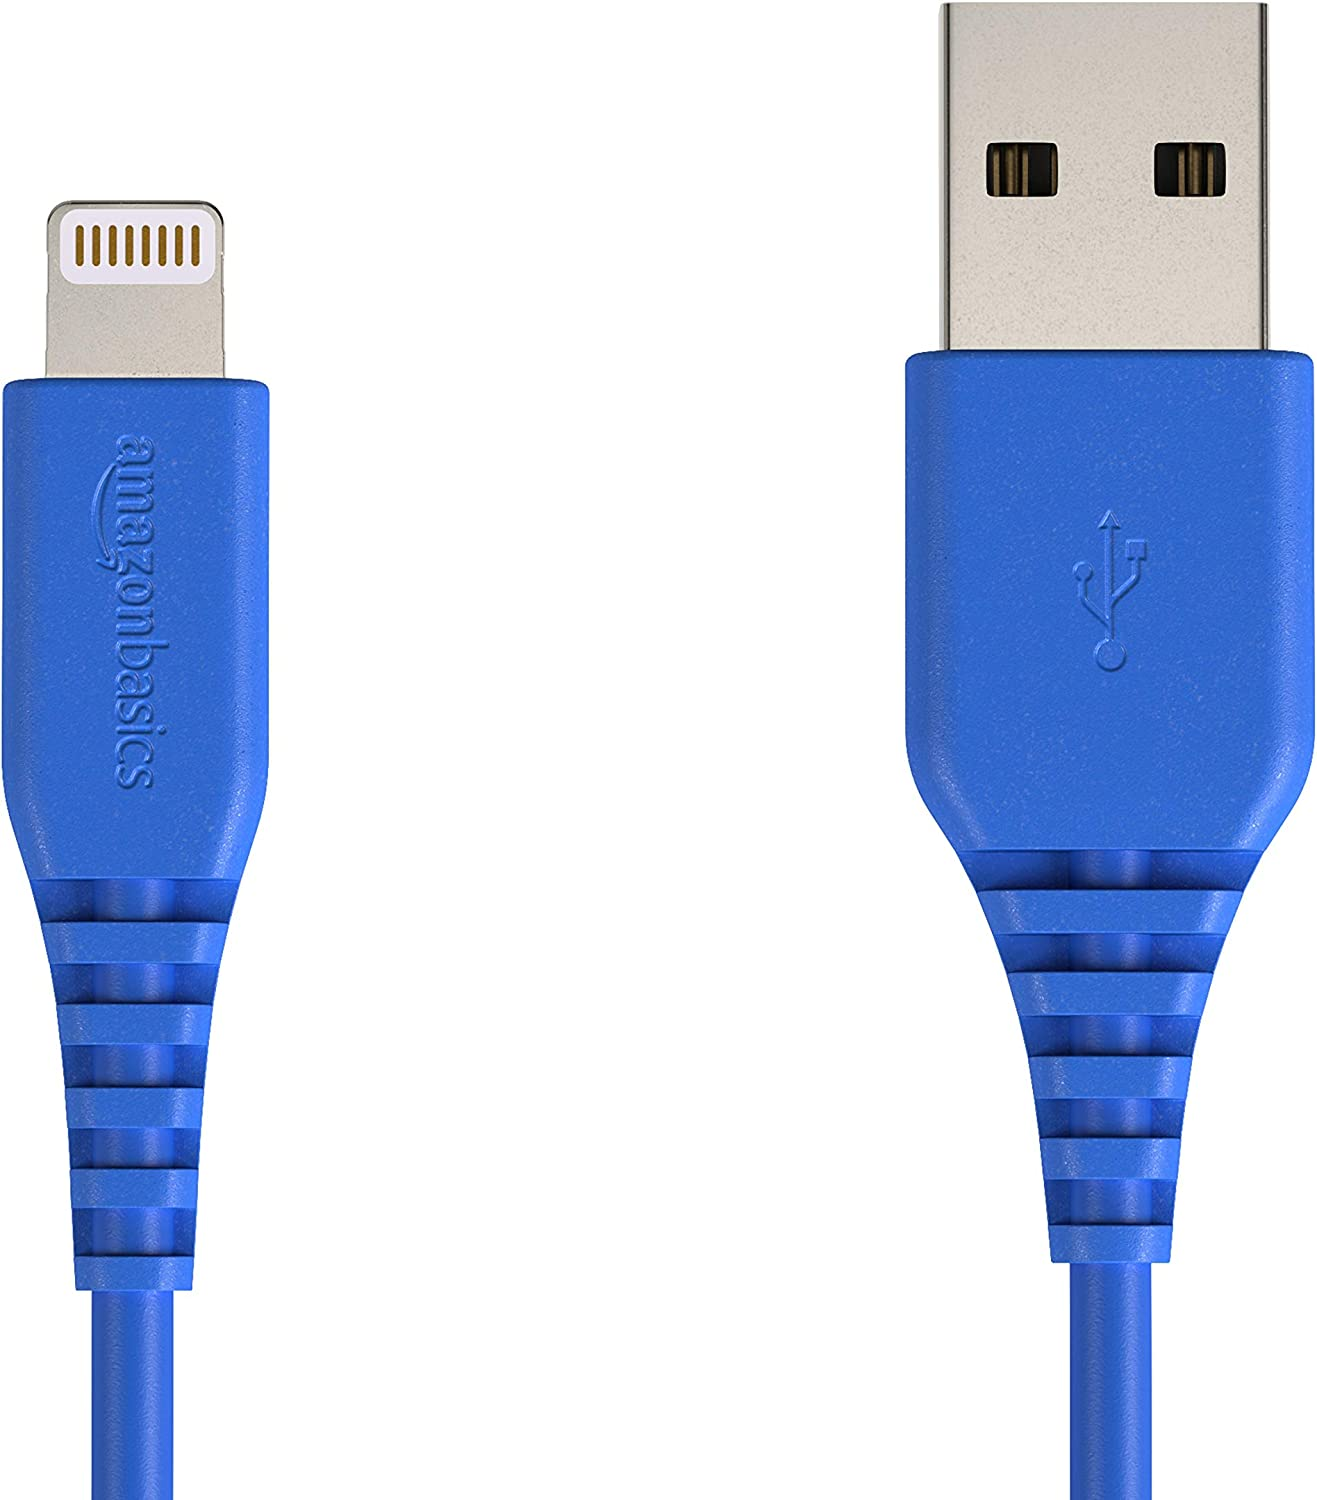 AmazonBasics Lightning to USB A Cable, MFi Certified iPhone Charger, Blue, 4 Inch